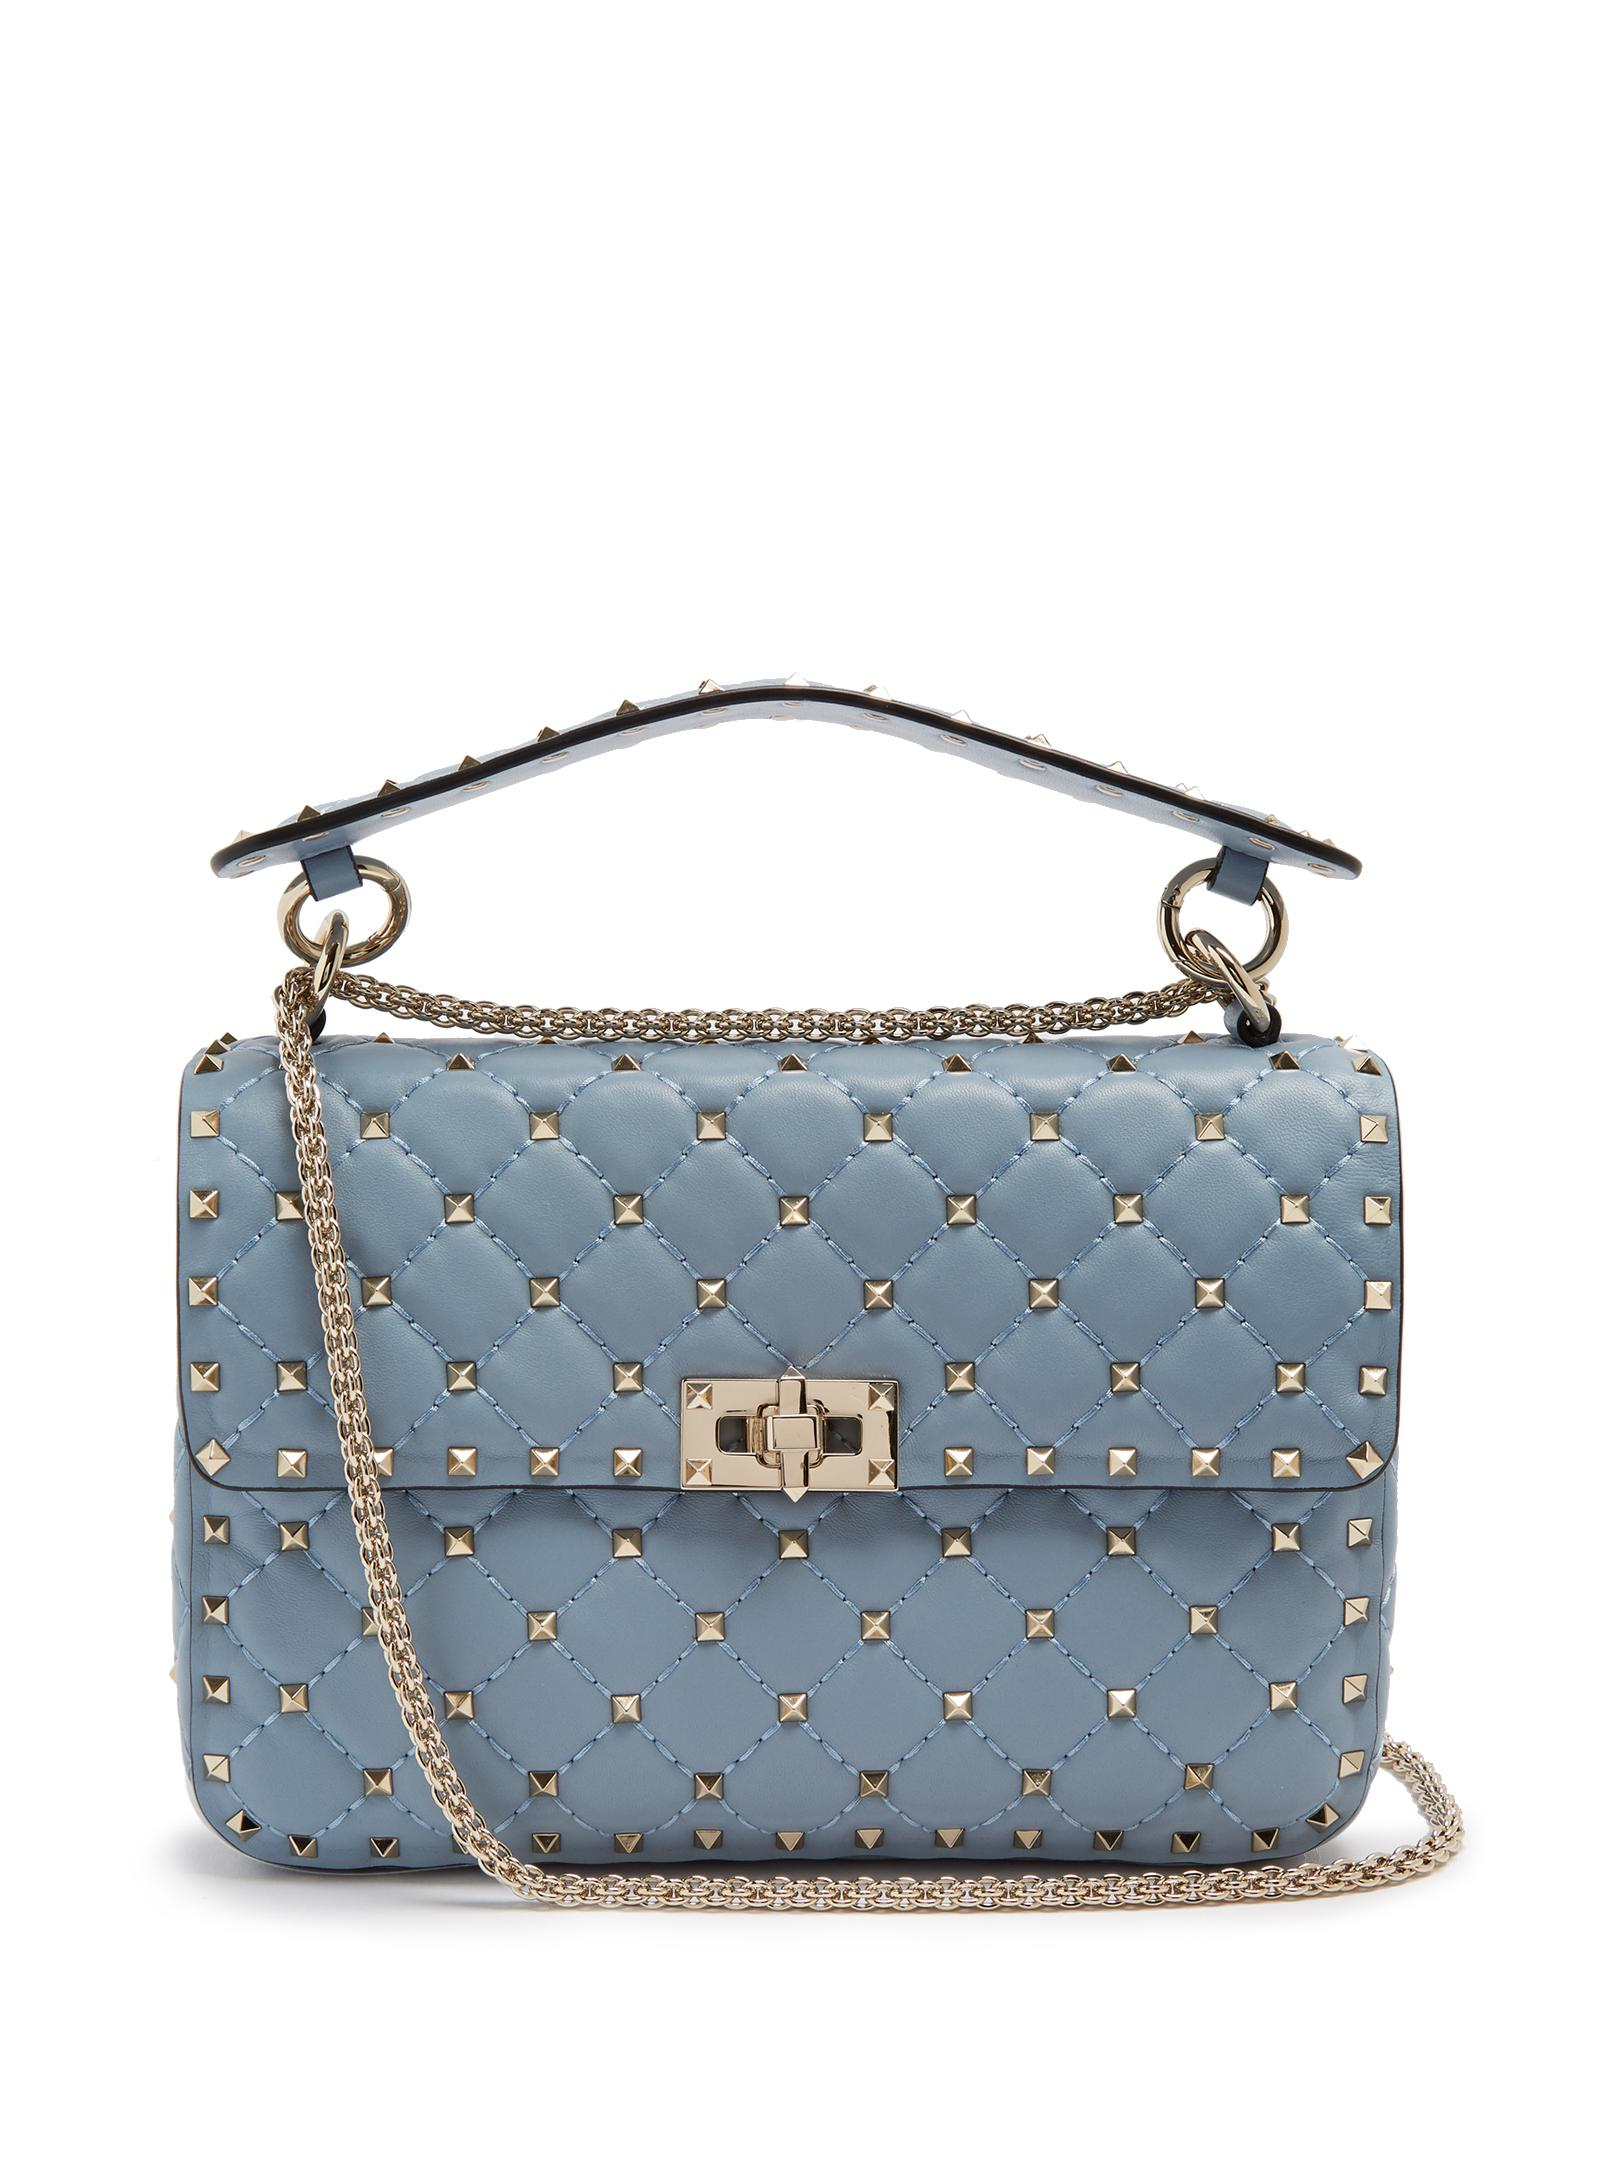 db18d6548e11 Gallery. Previously sold at  MATCHESFASHION.COM · Women s Valentino  Rockstud Bags Women s Denim Shoulder ...